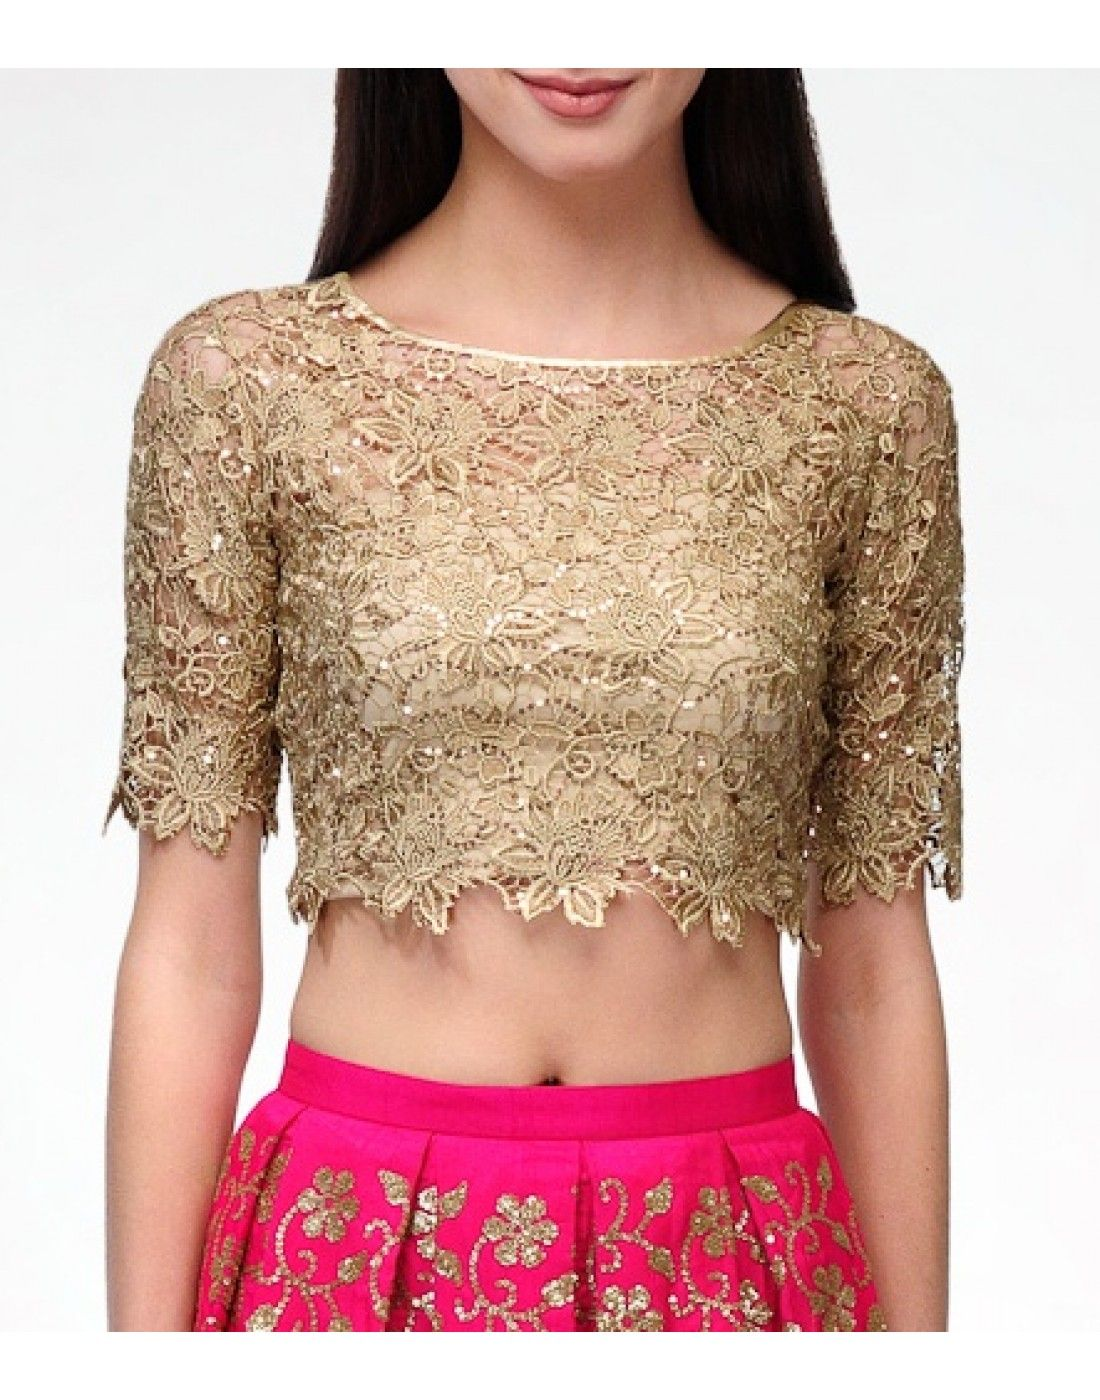 498a3624a8ac95 Lace Gold Crop Top - Blouses - Clothing